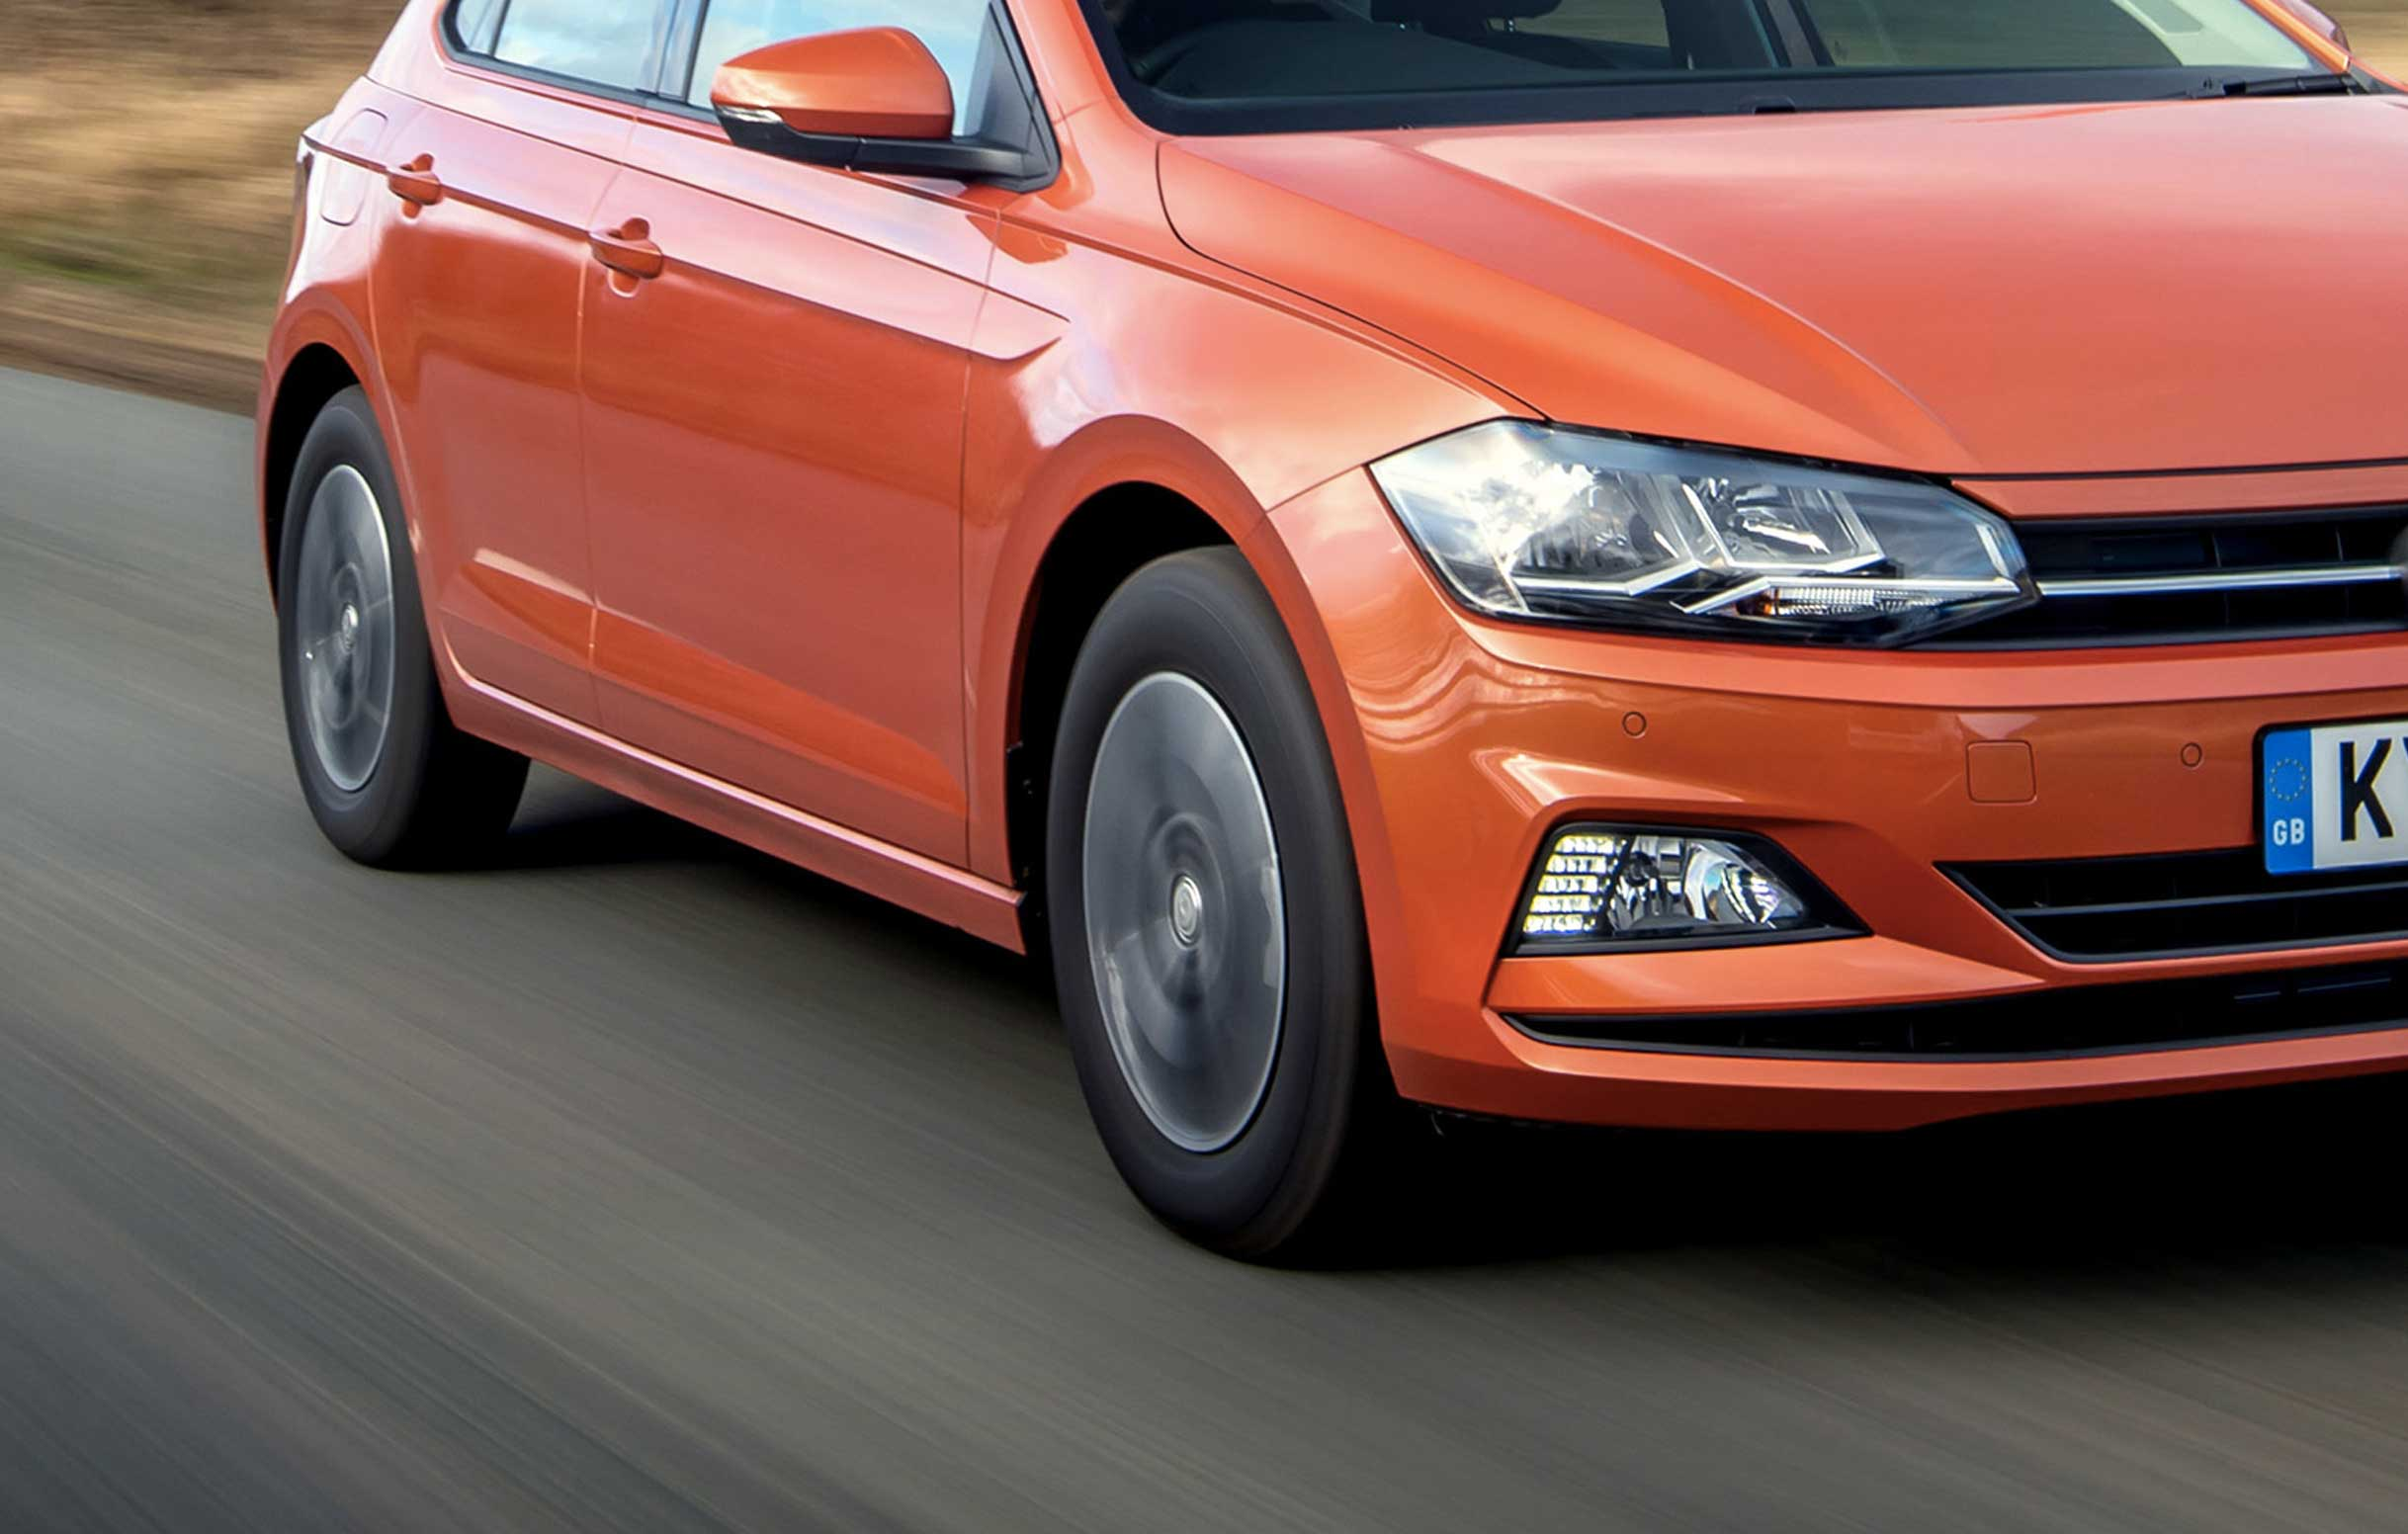 Independent VW Specialists - RD Garage Services